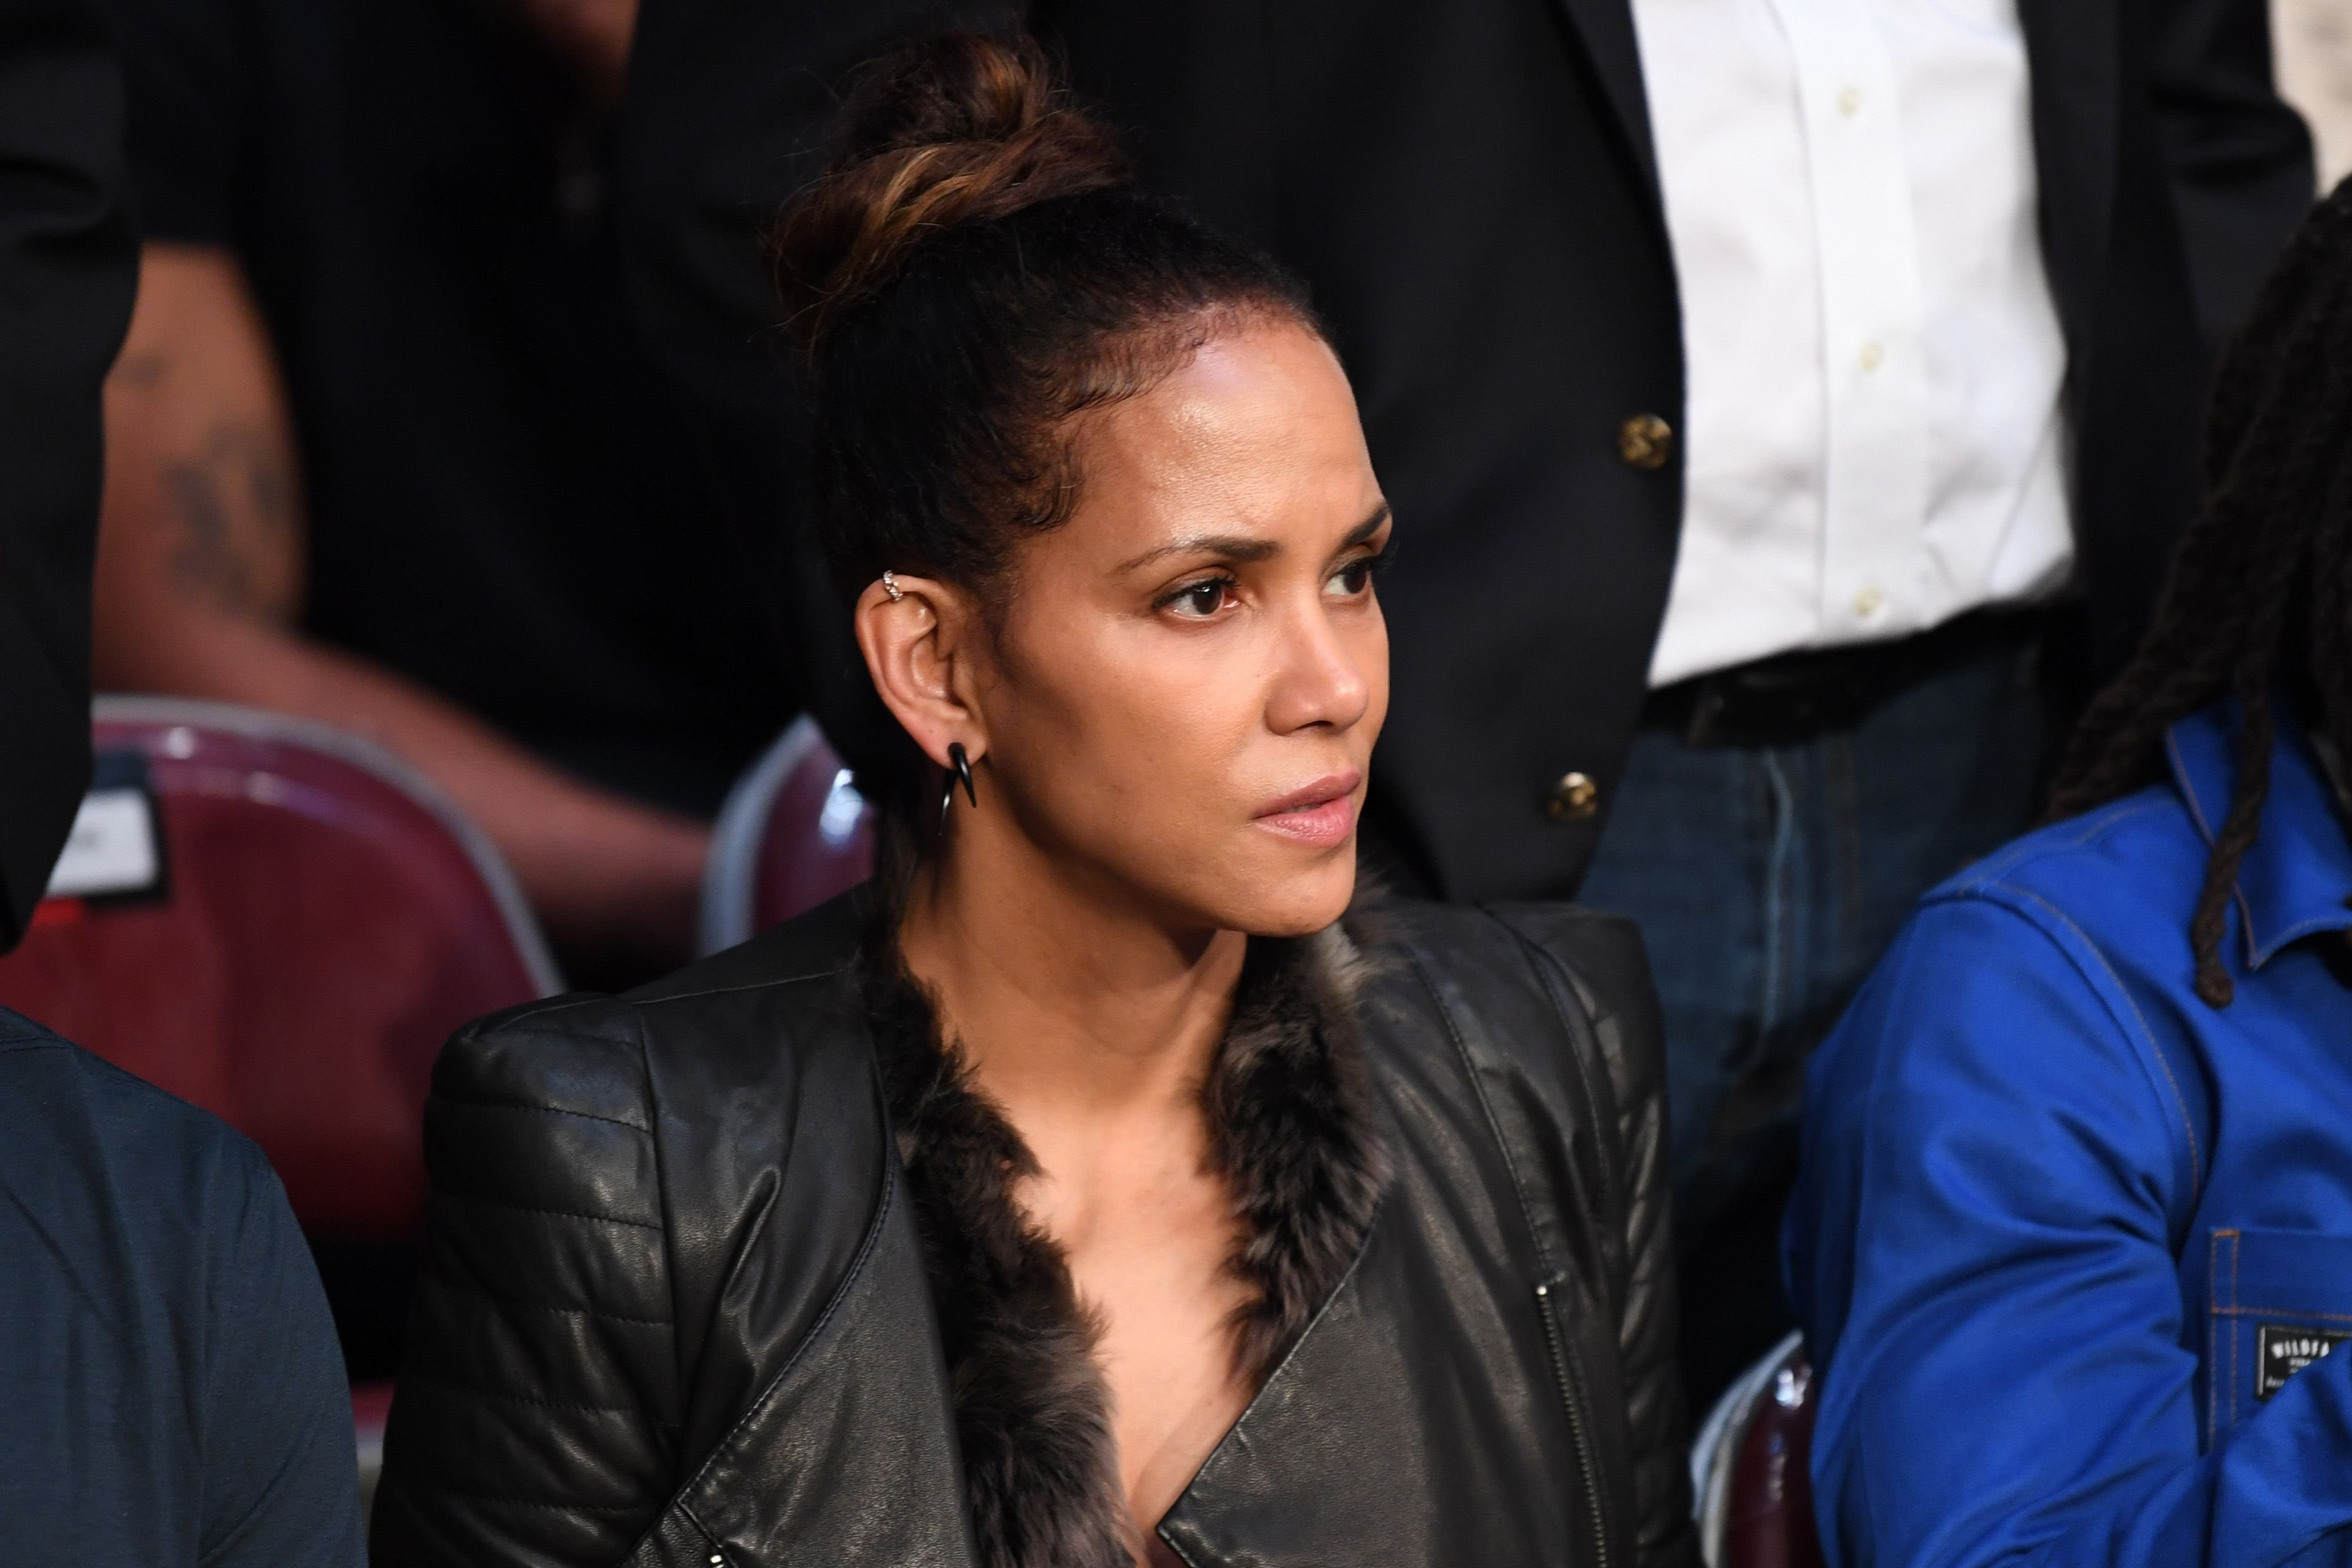 Halle Berry is seen in attendance during the UFC 247 event at Toyota Center on February 08, 2020 in Houston, Texas. | Source: Getty Images